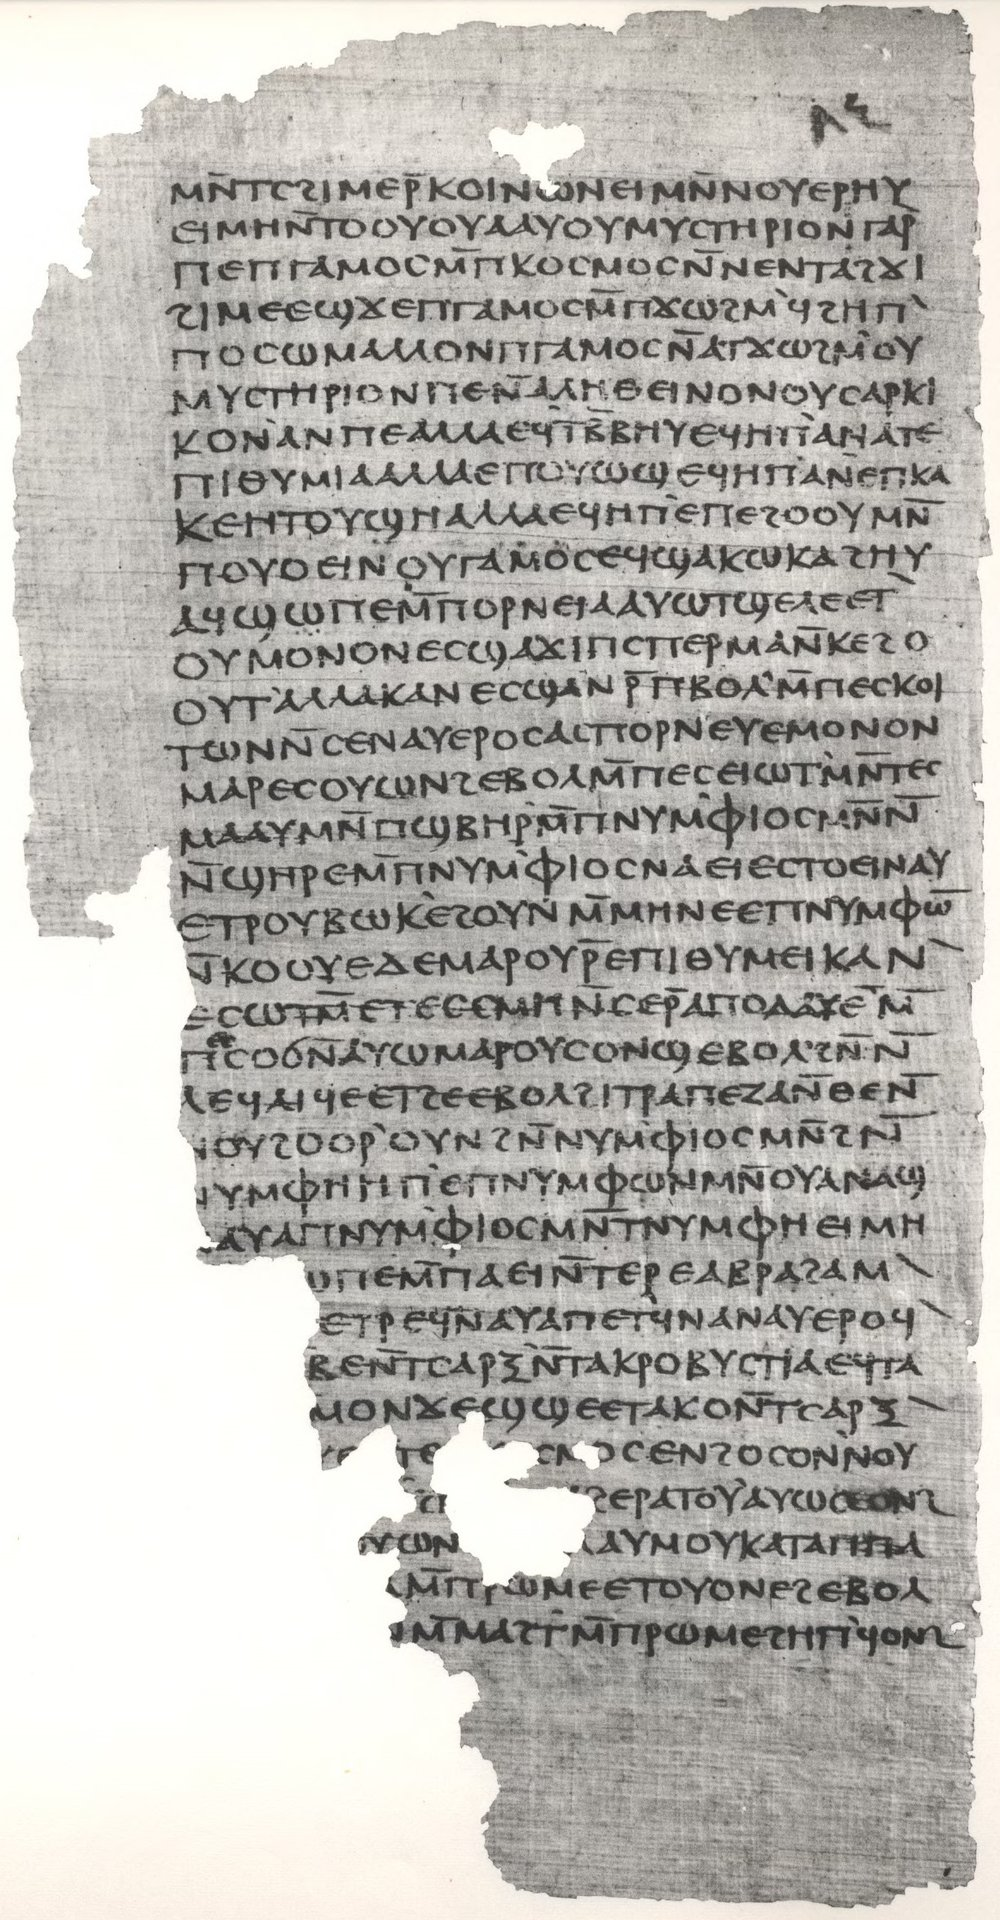 Gospel_of_Philip_facsimile_Page_82.jpg